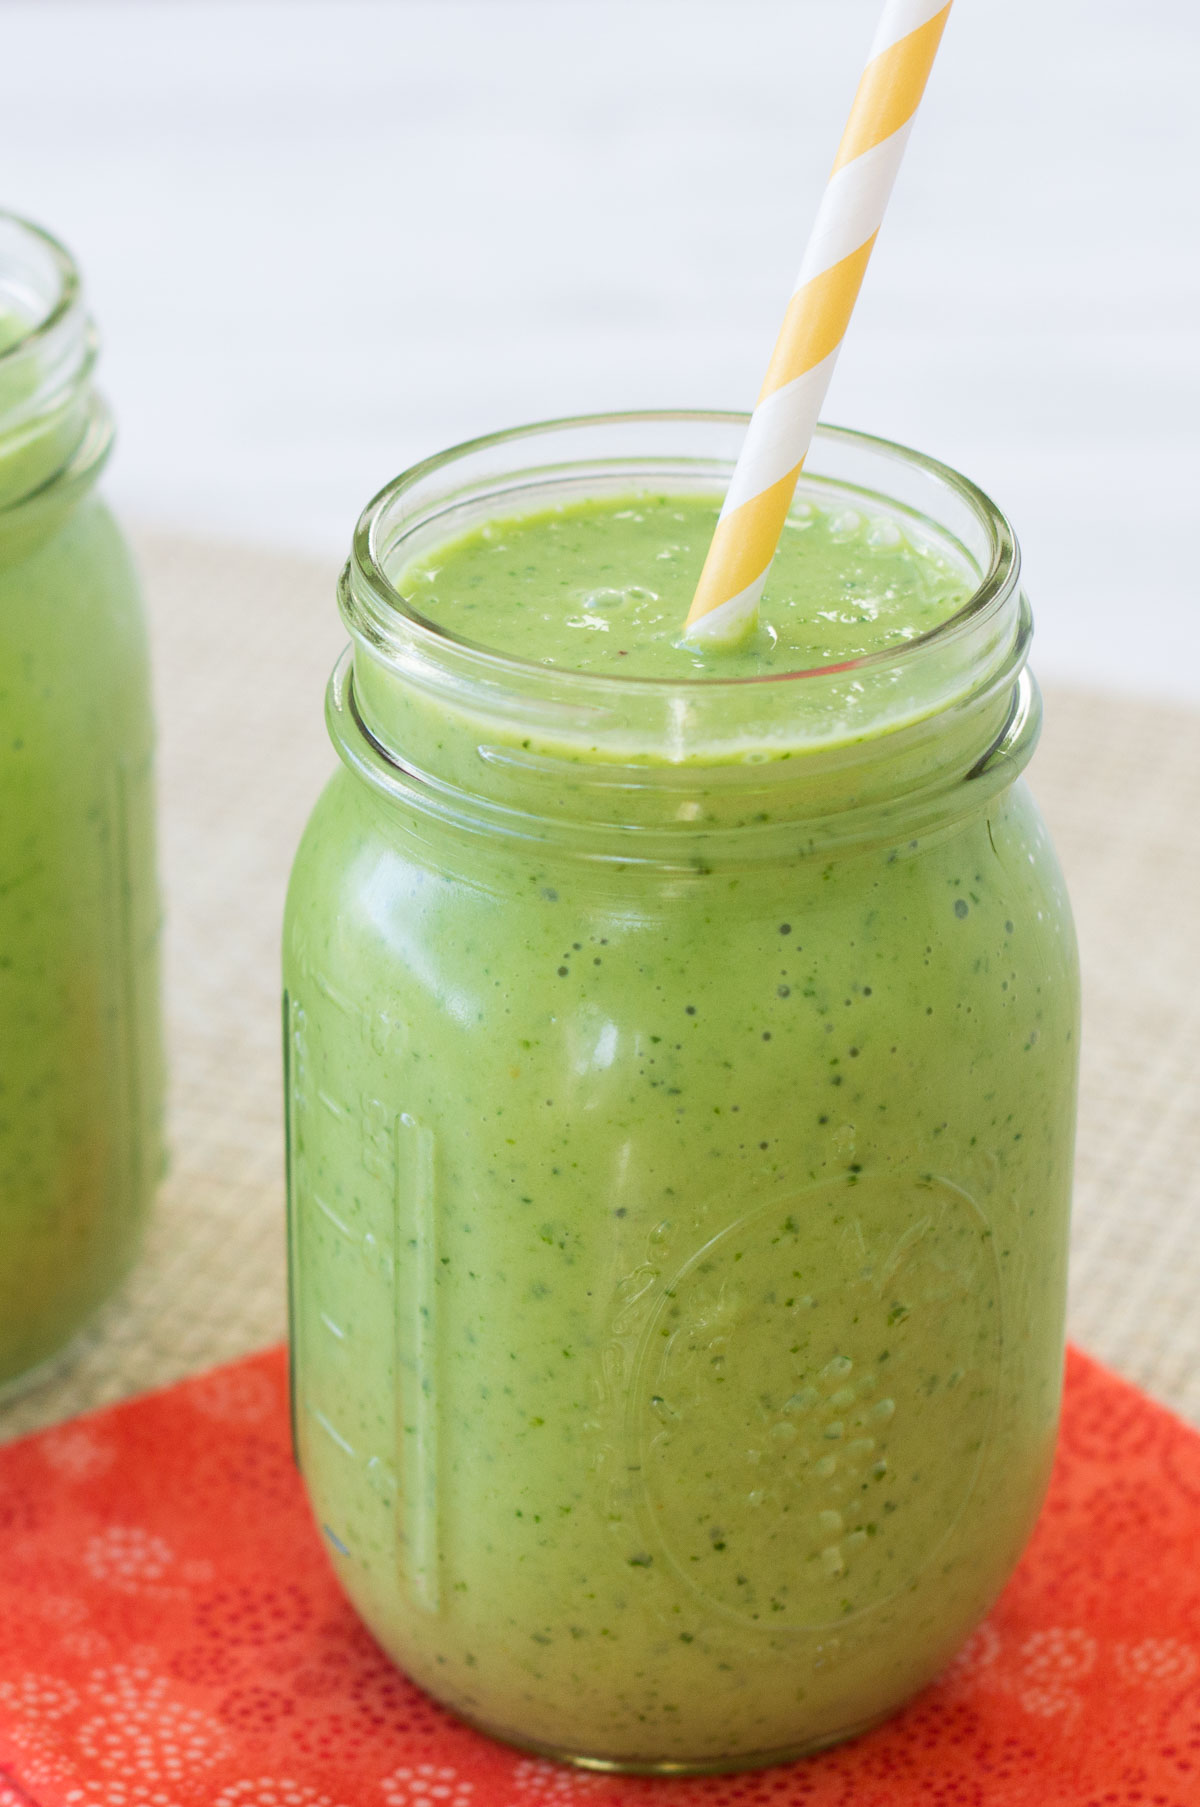 Kale smoothie in a glass with a straw.